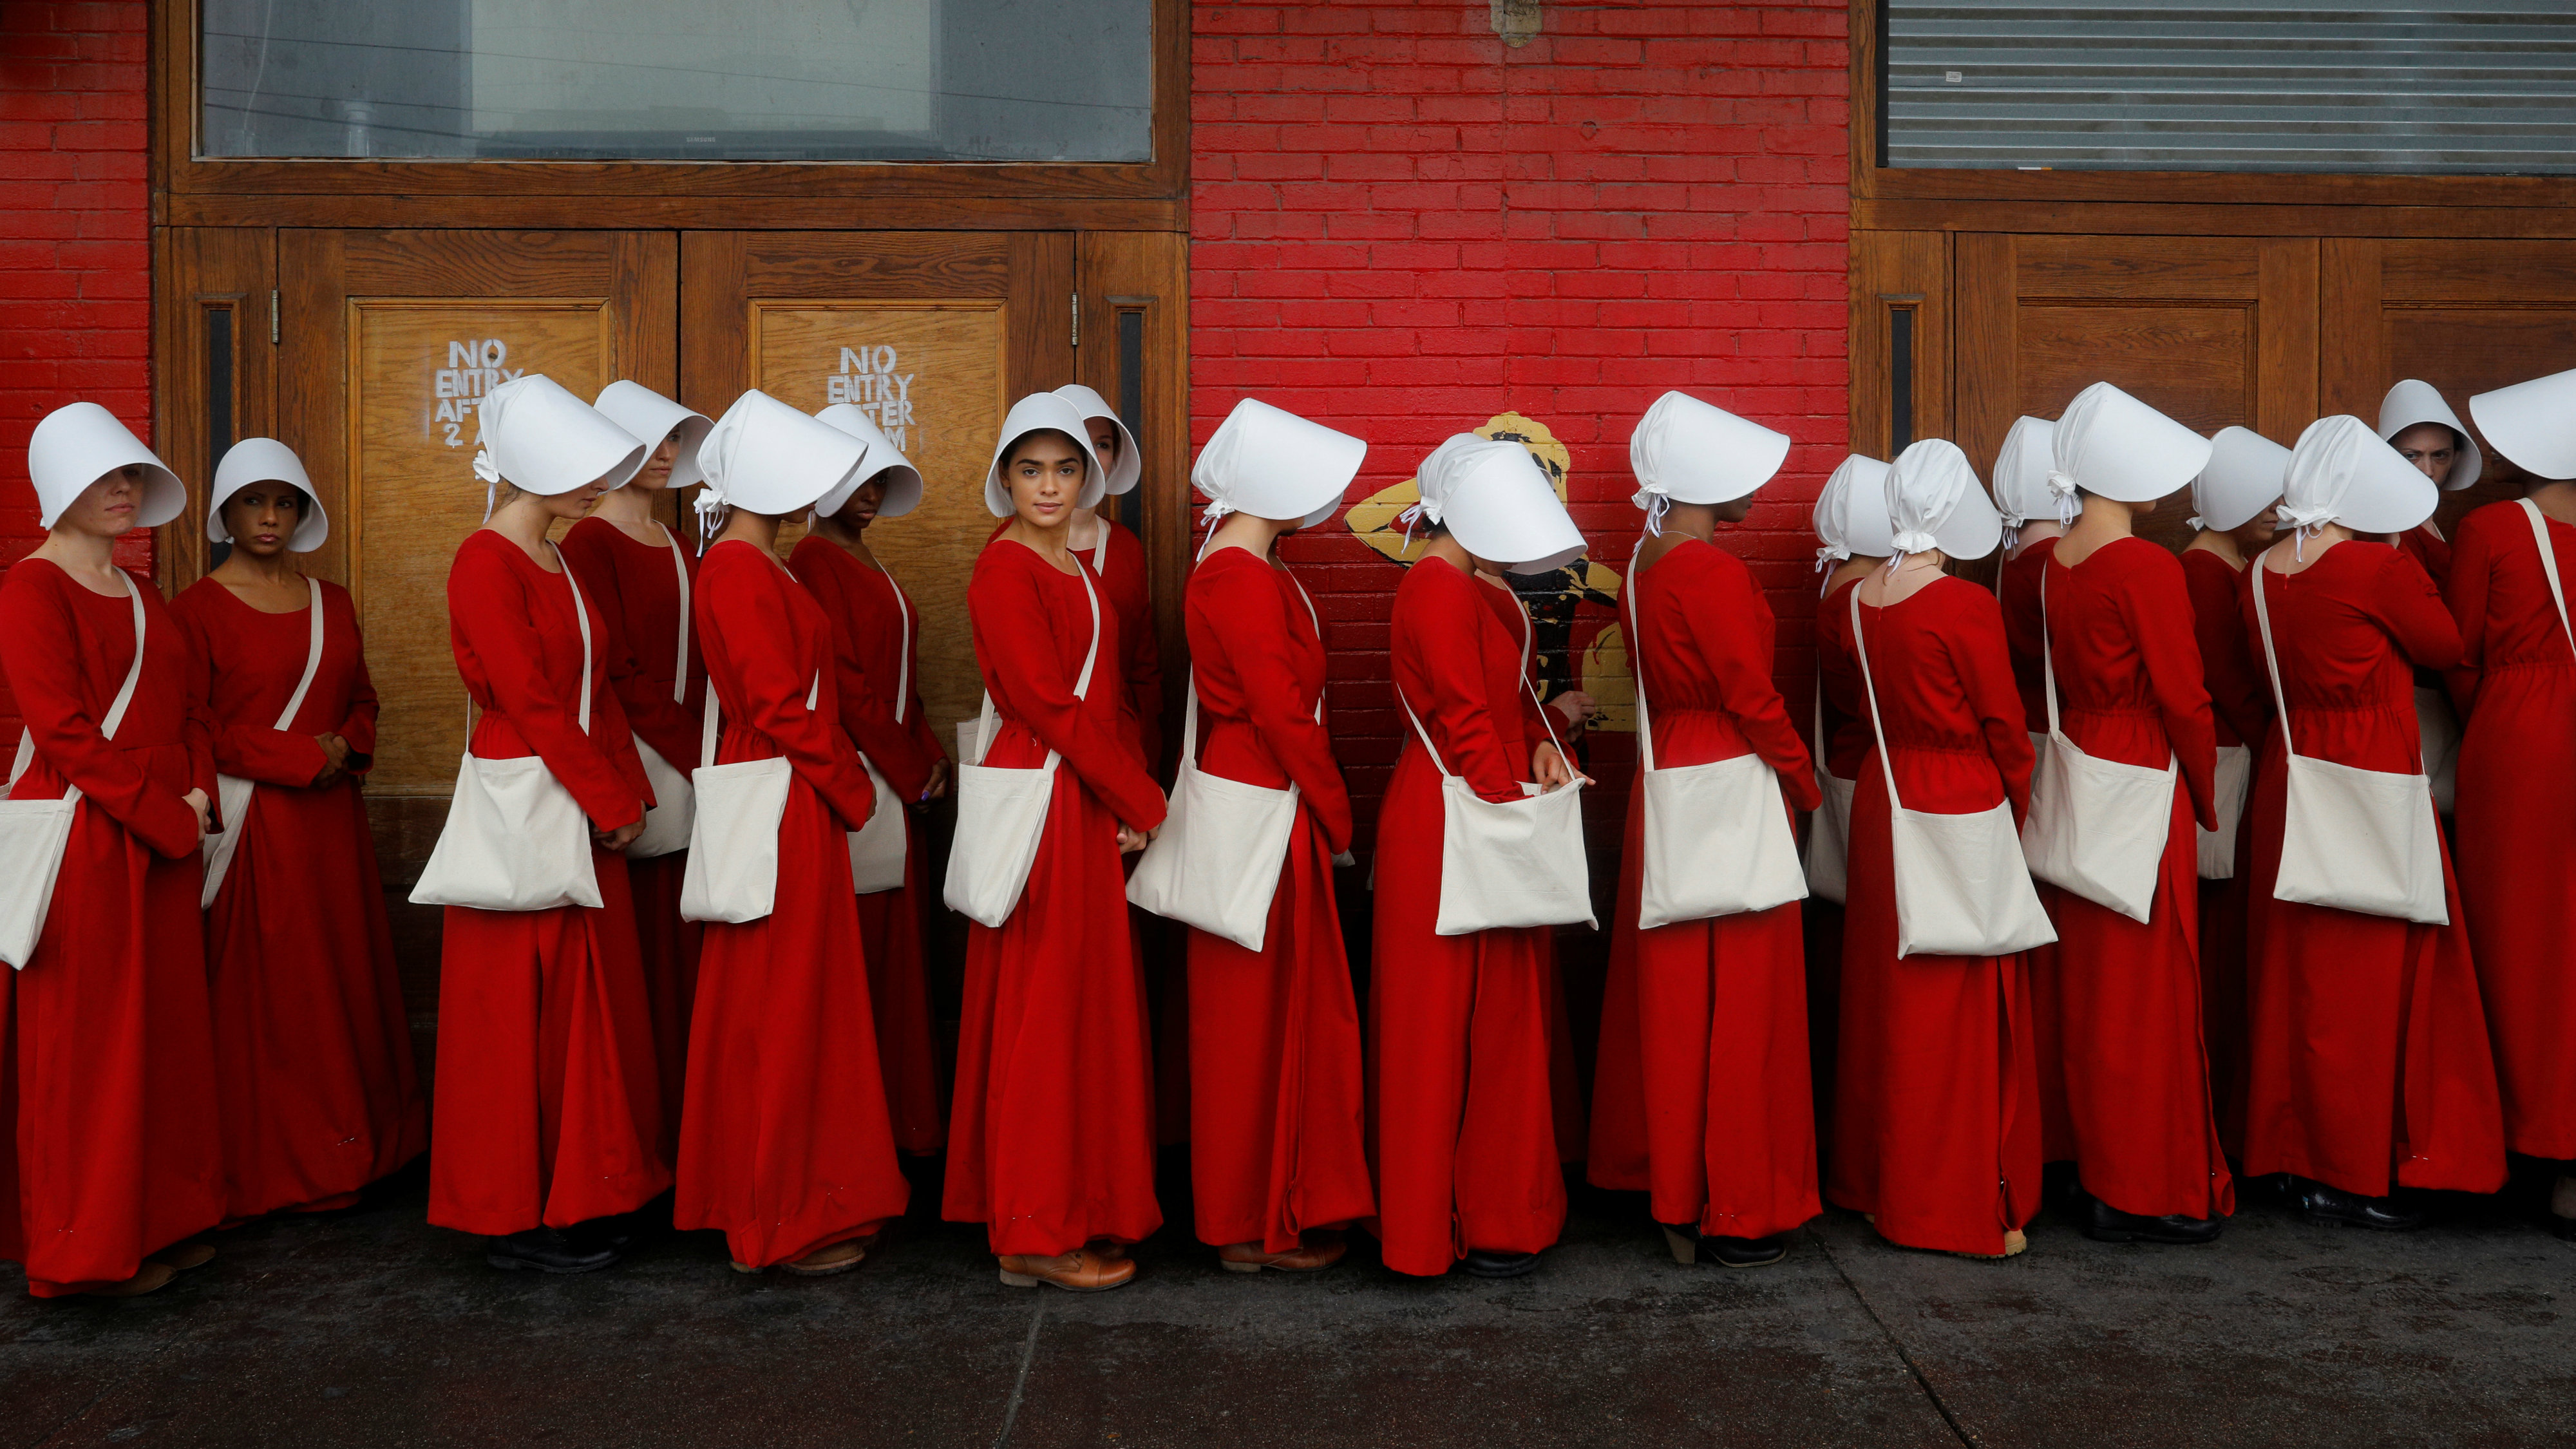 """Women dressed as handmaids promoting the Hulu original series """"The Handmaid's Tale"""" stand along a public street during the South by Southwest (SXSW) Music Film Interactive Festival 2017 in Austin, Texas, U.S., March 11, 2017. REUTERS/Brian Snyder"""